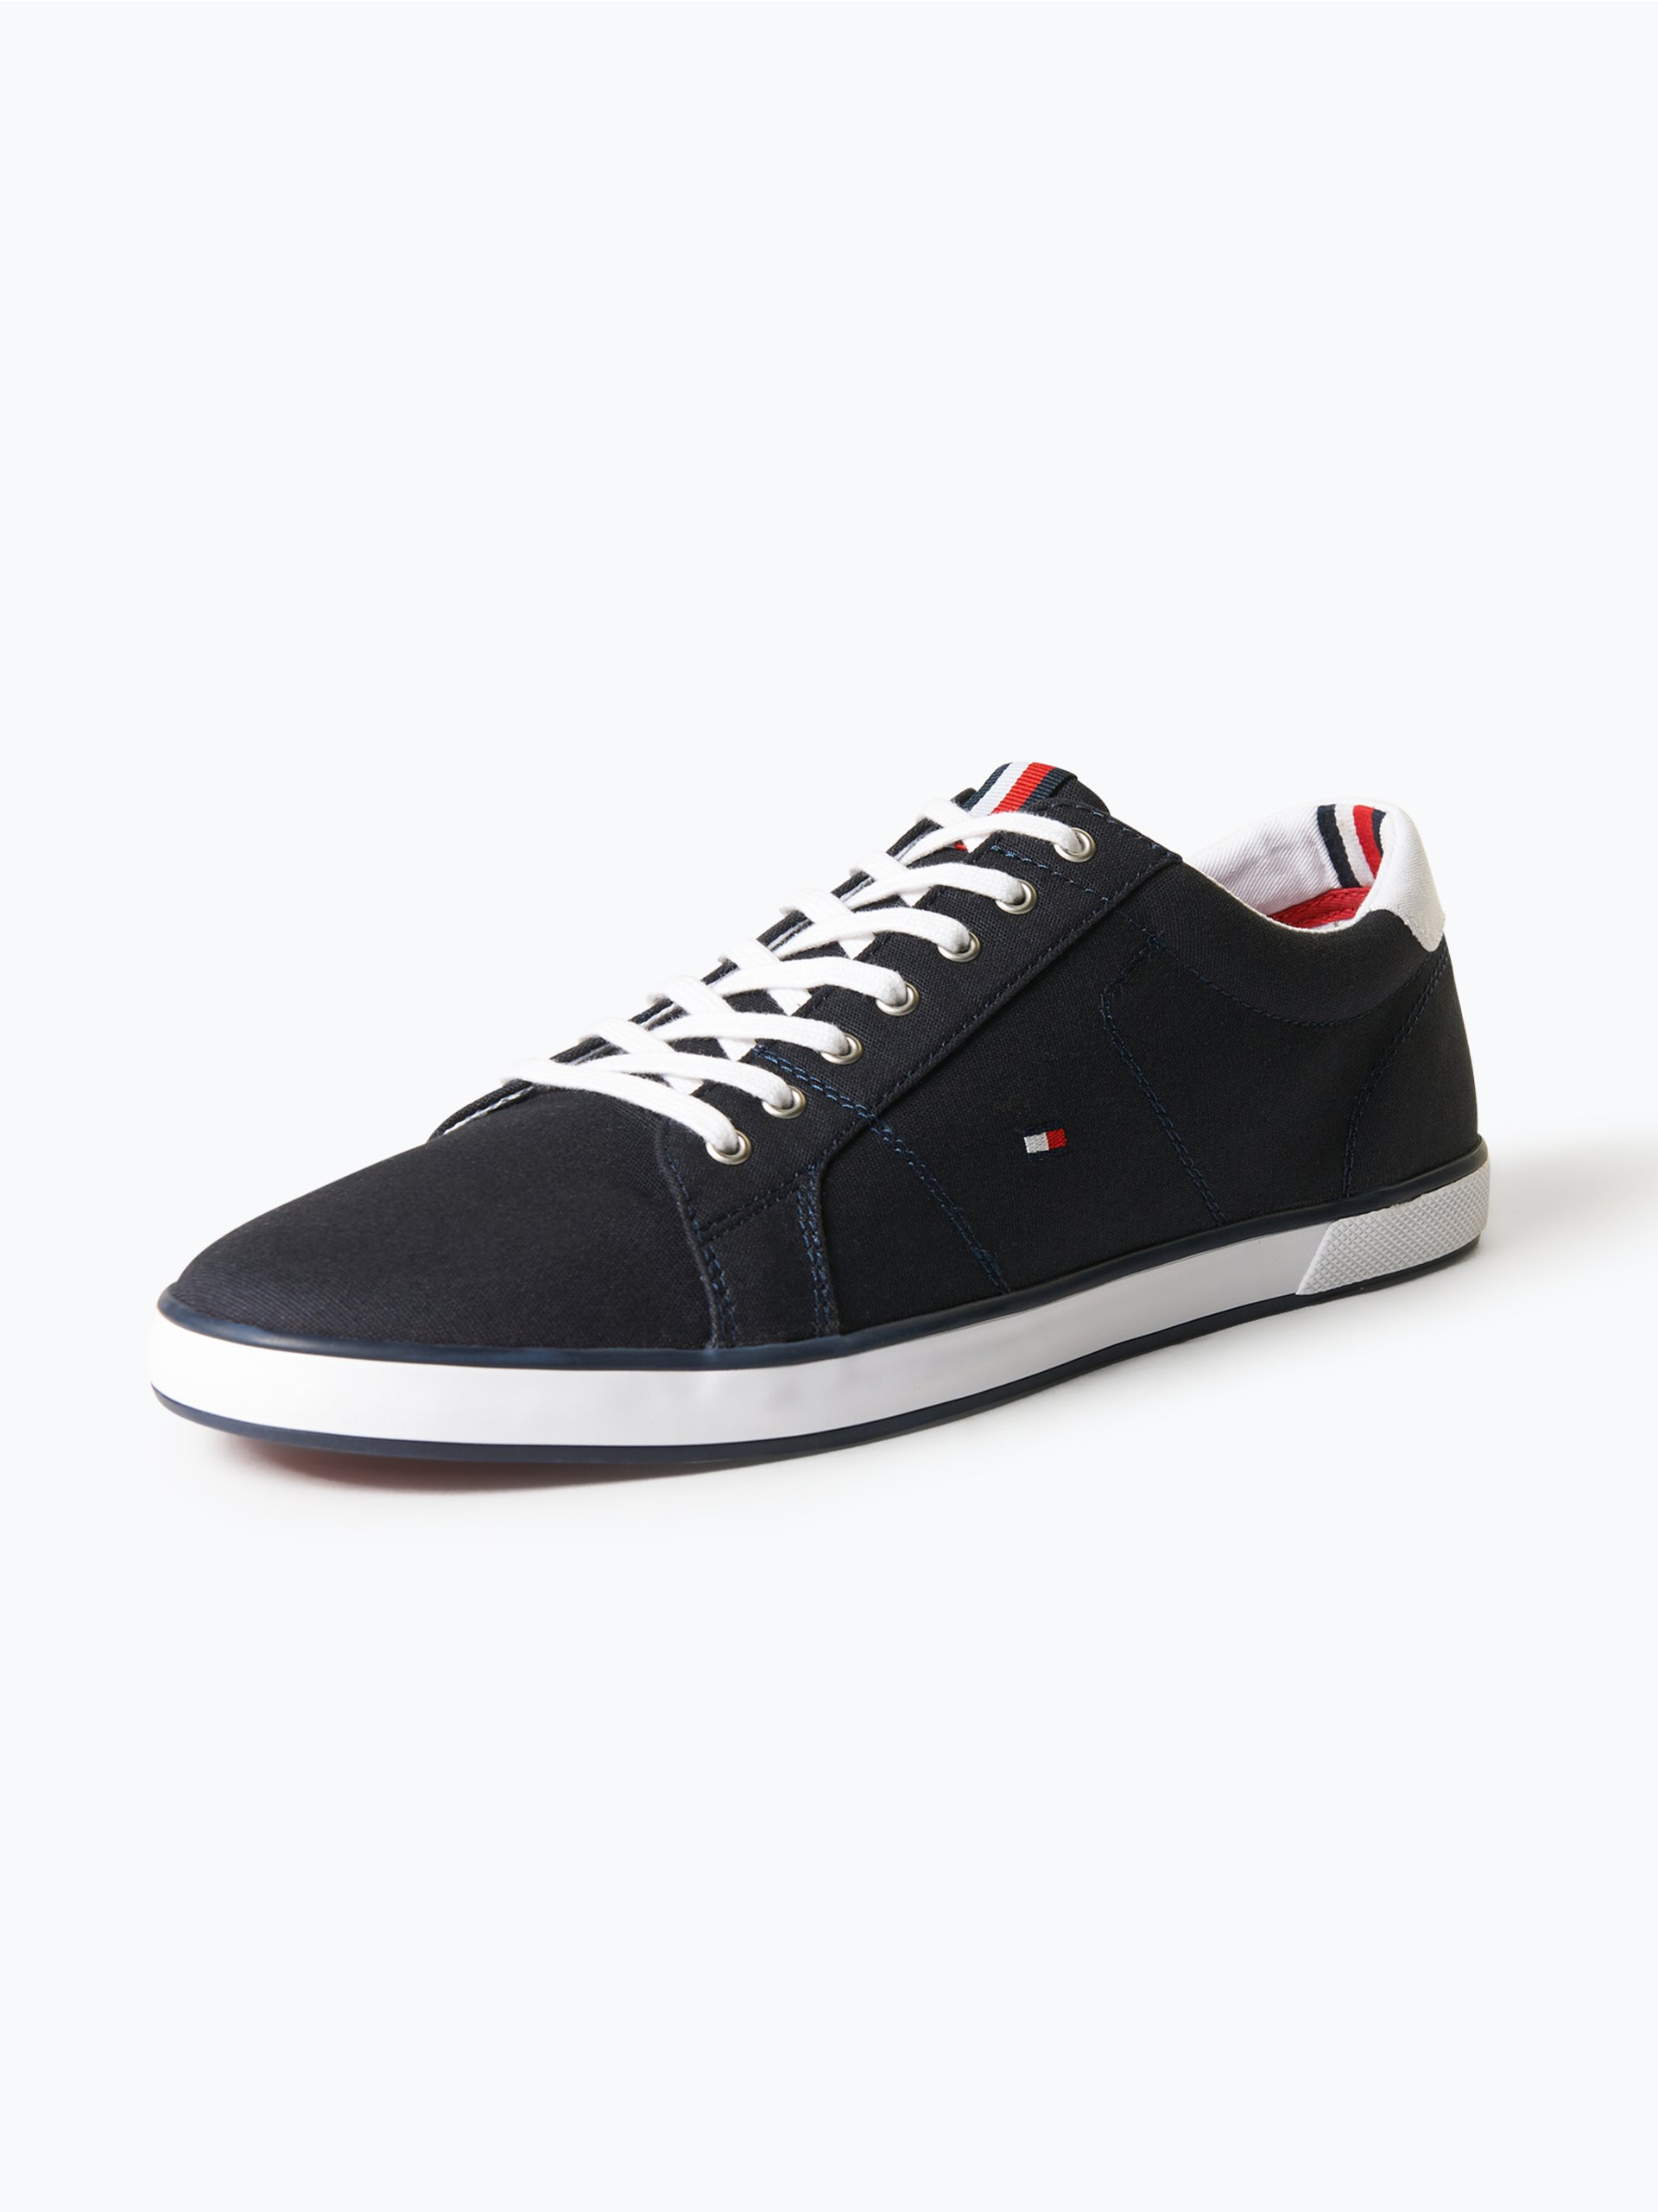 tommy hilfiger herren sneaker harlow 1d marine uni. Black Bedroom Furniture Sets. Home Design Ideas